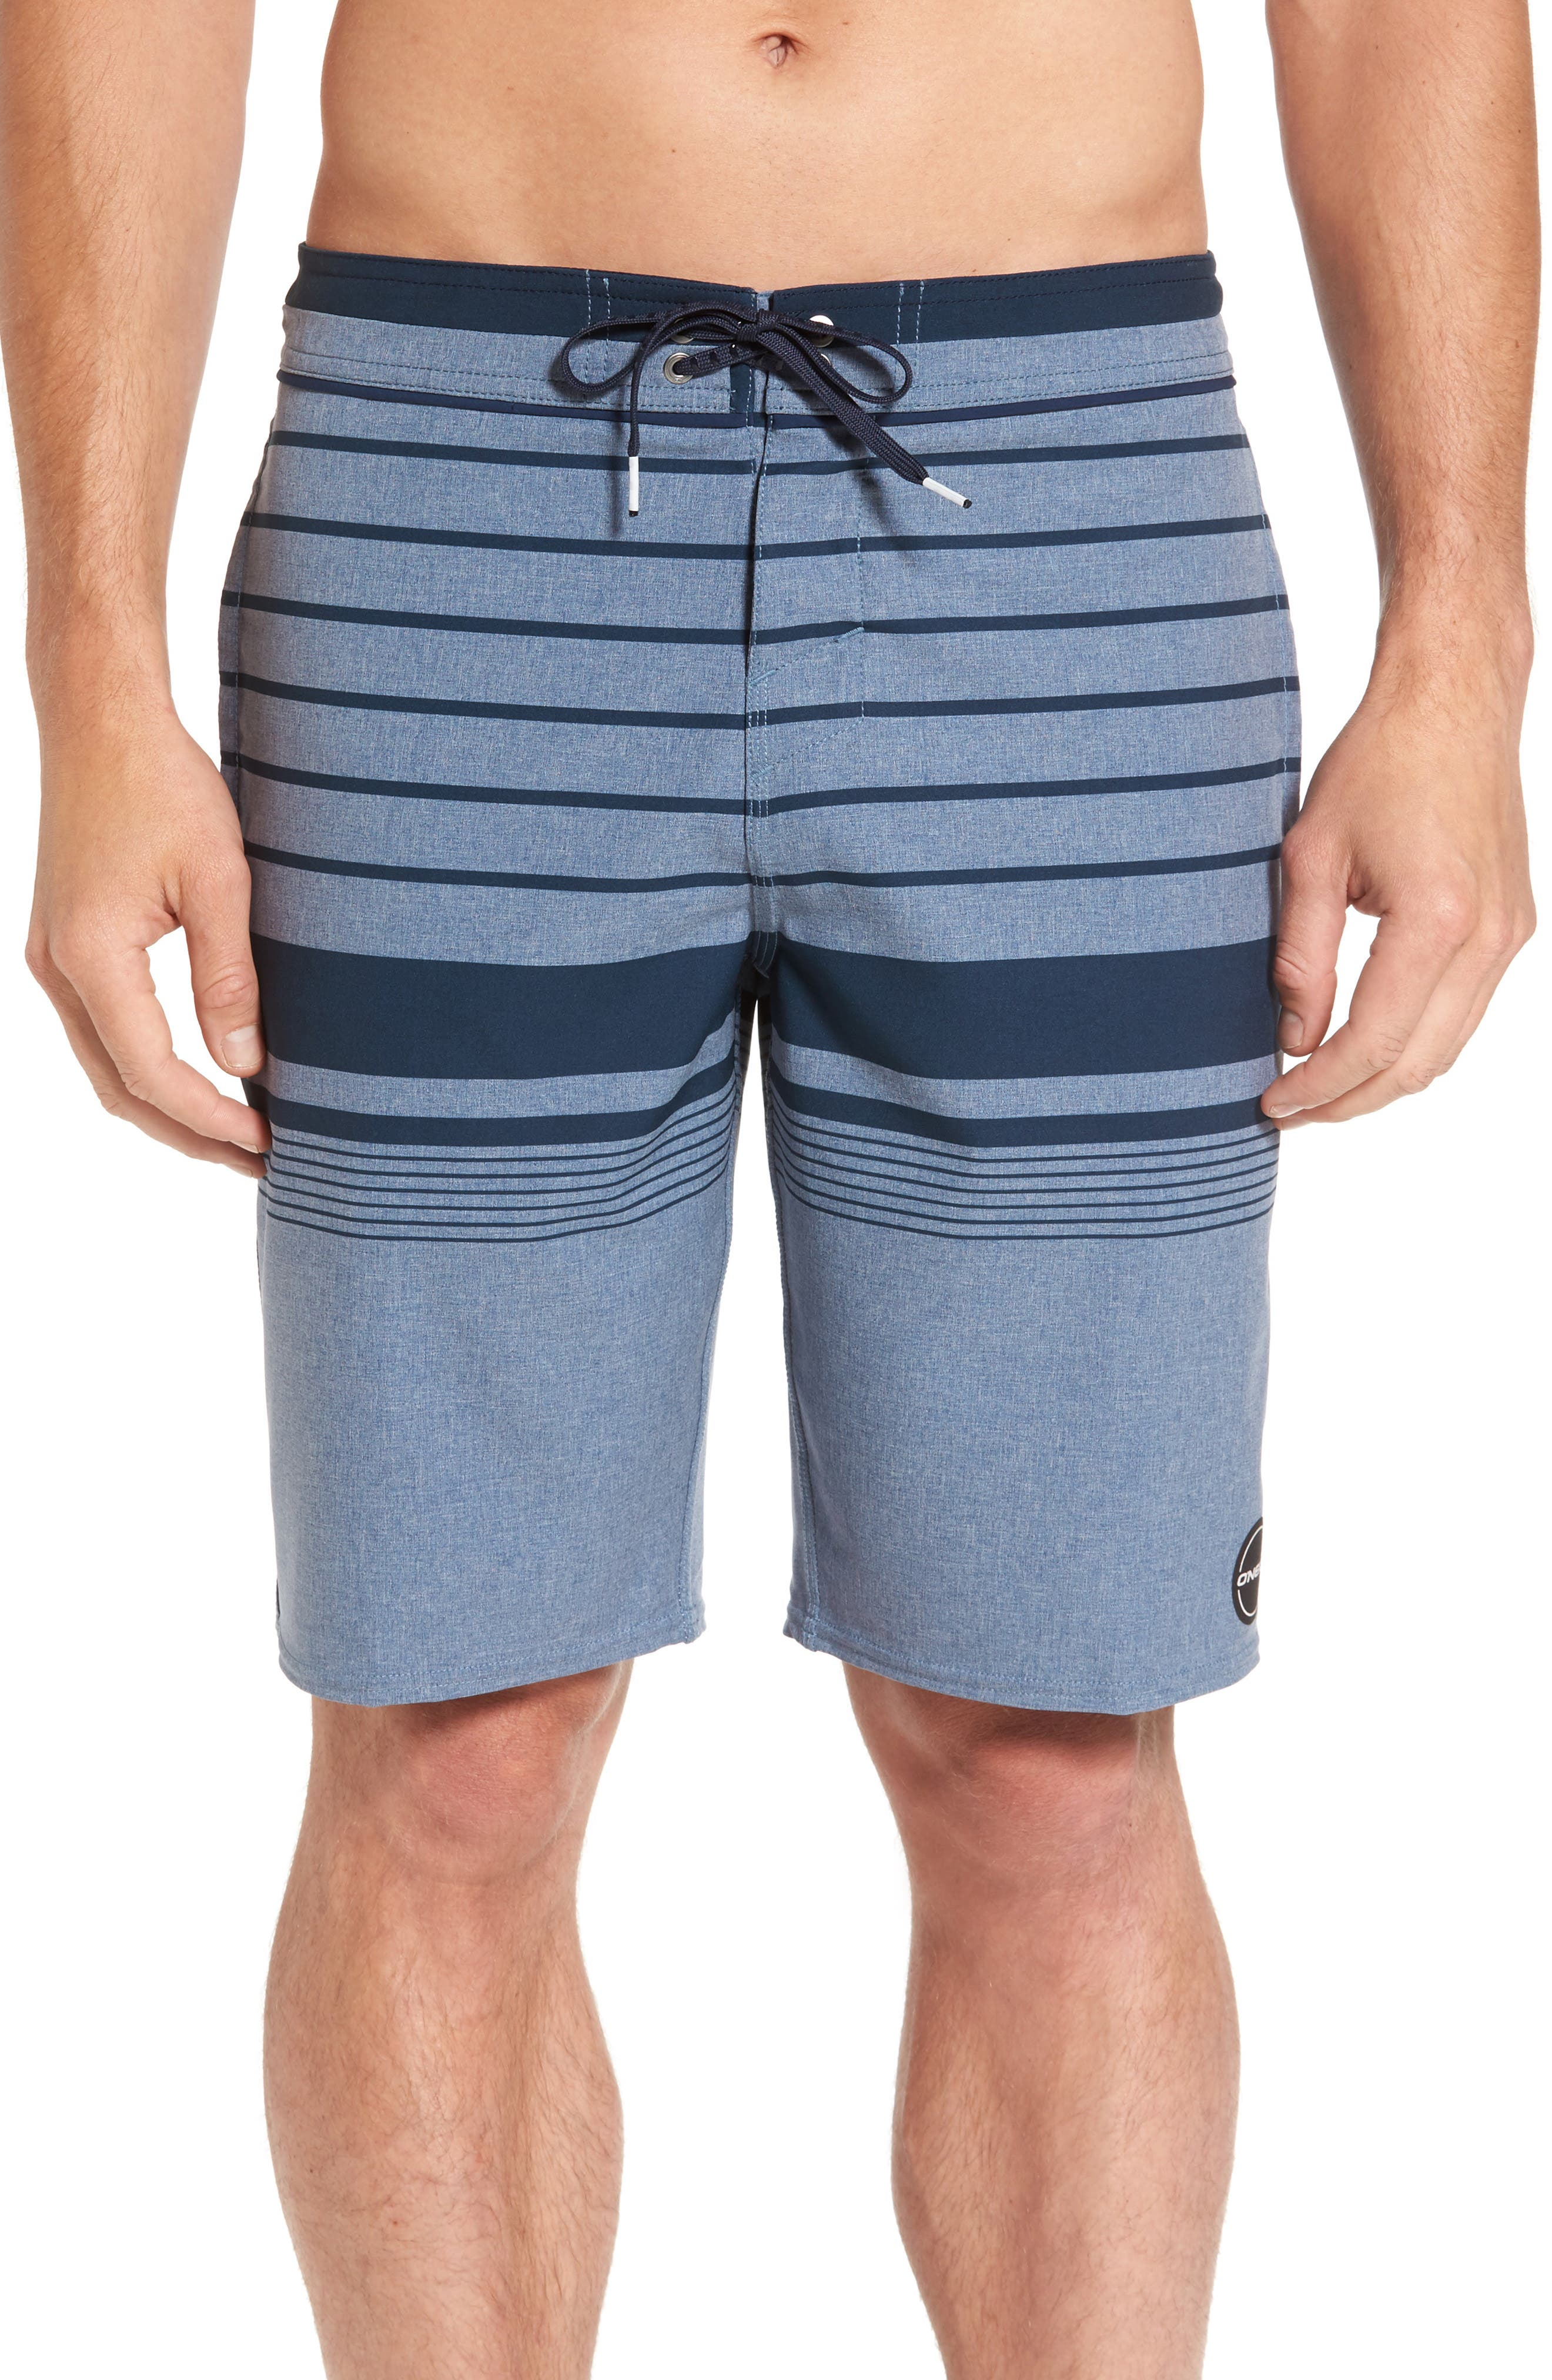 O'Neill Hyperfreak Vista 24-7 Board Shorts